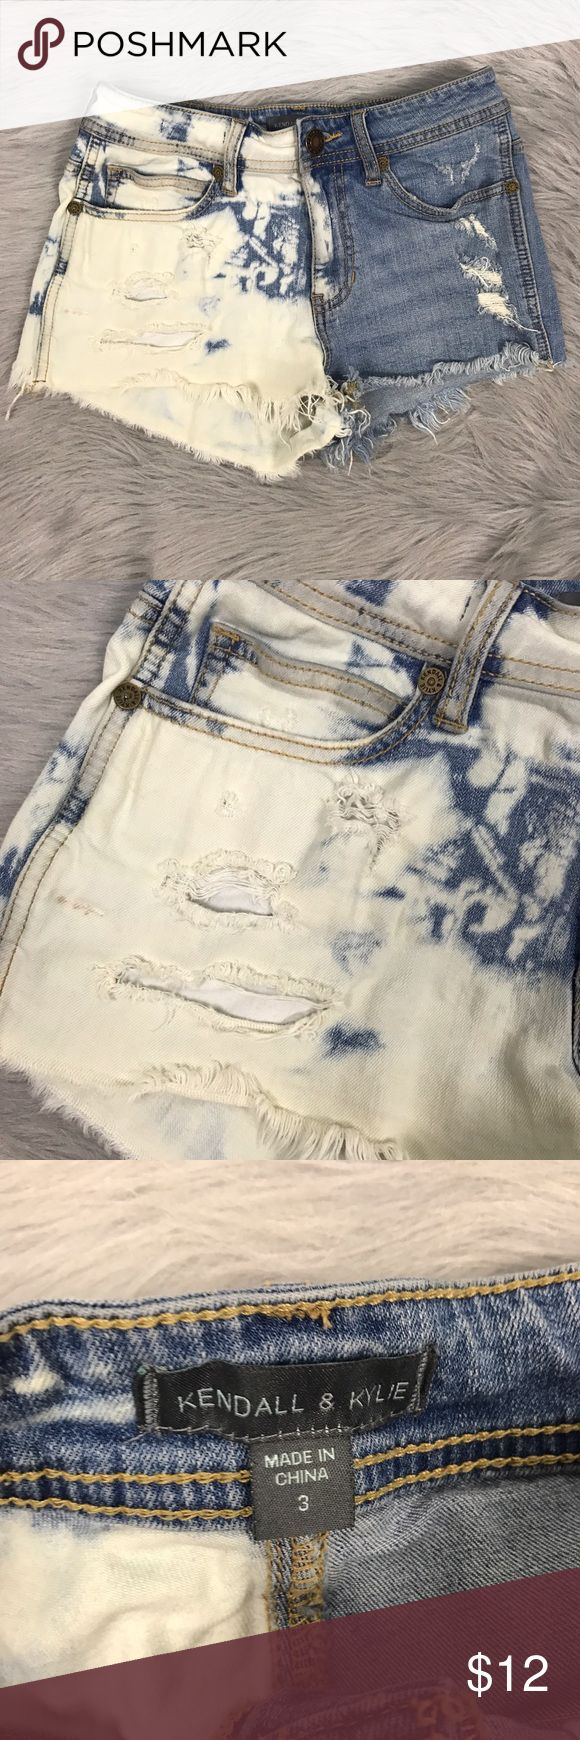 Kendall & Kylie jenner shorts cut off Sz 3 Size 3 Kendall & Kylie shorts! Cut off distressed look! Size 3 - as you can see in photos there is a tiny discoloration on one of the  legs - I have not attempted removal Kendall & Kylie Shorts Jean Shorts